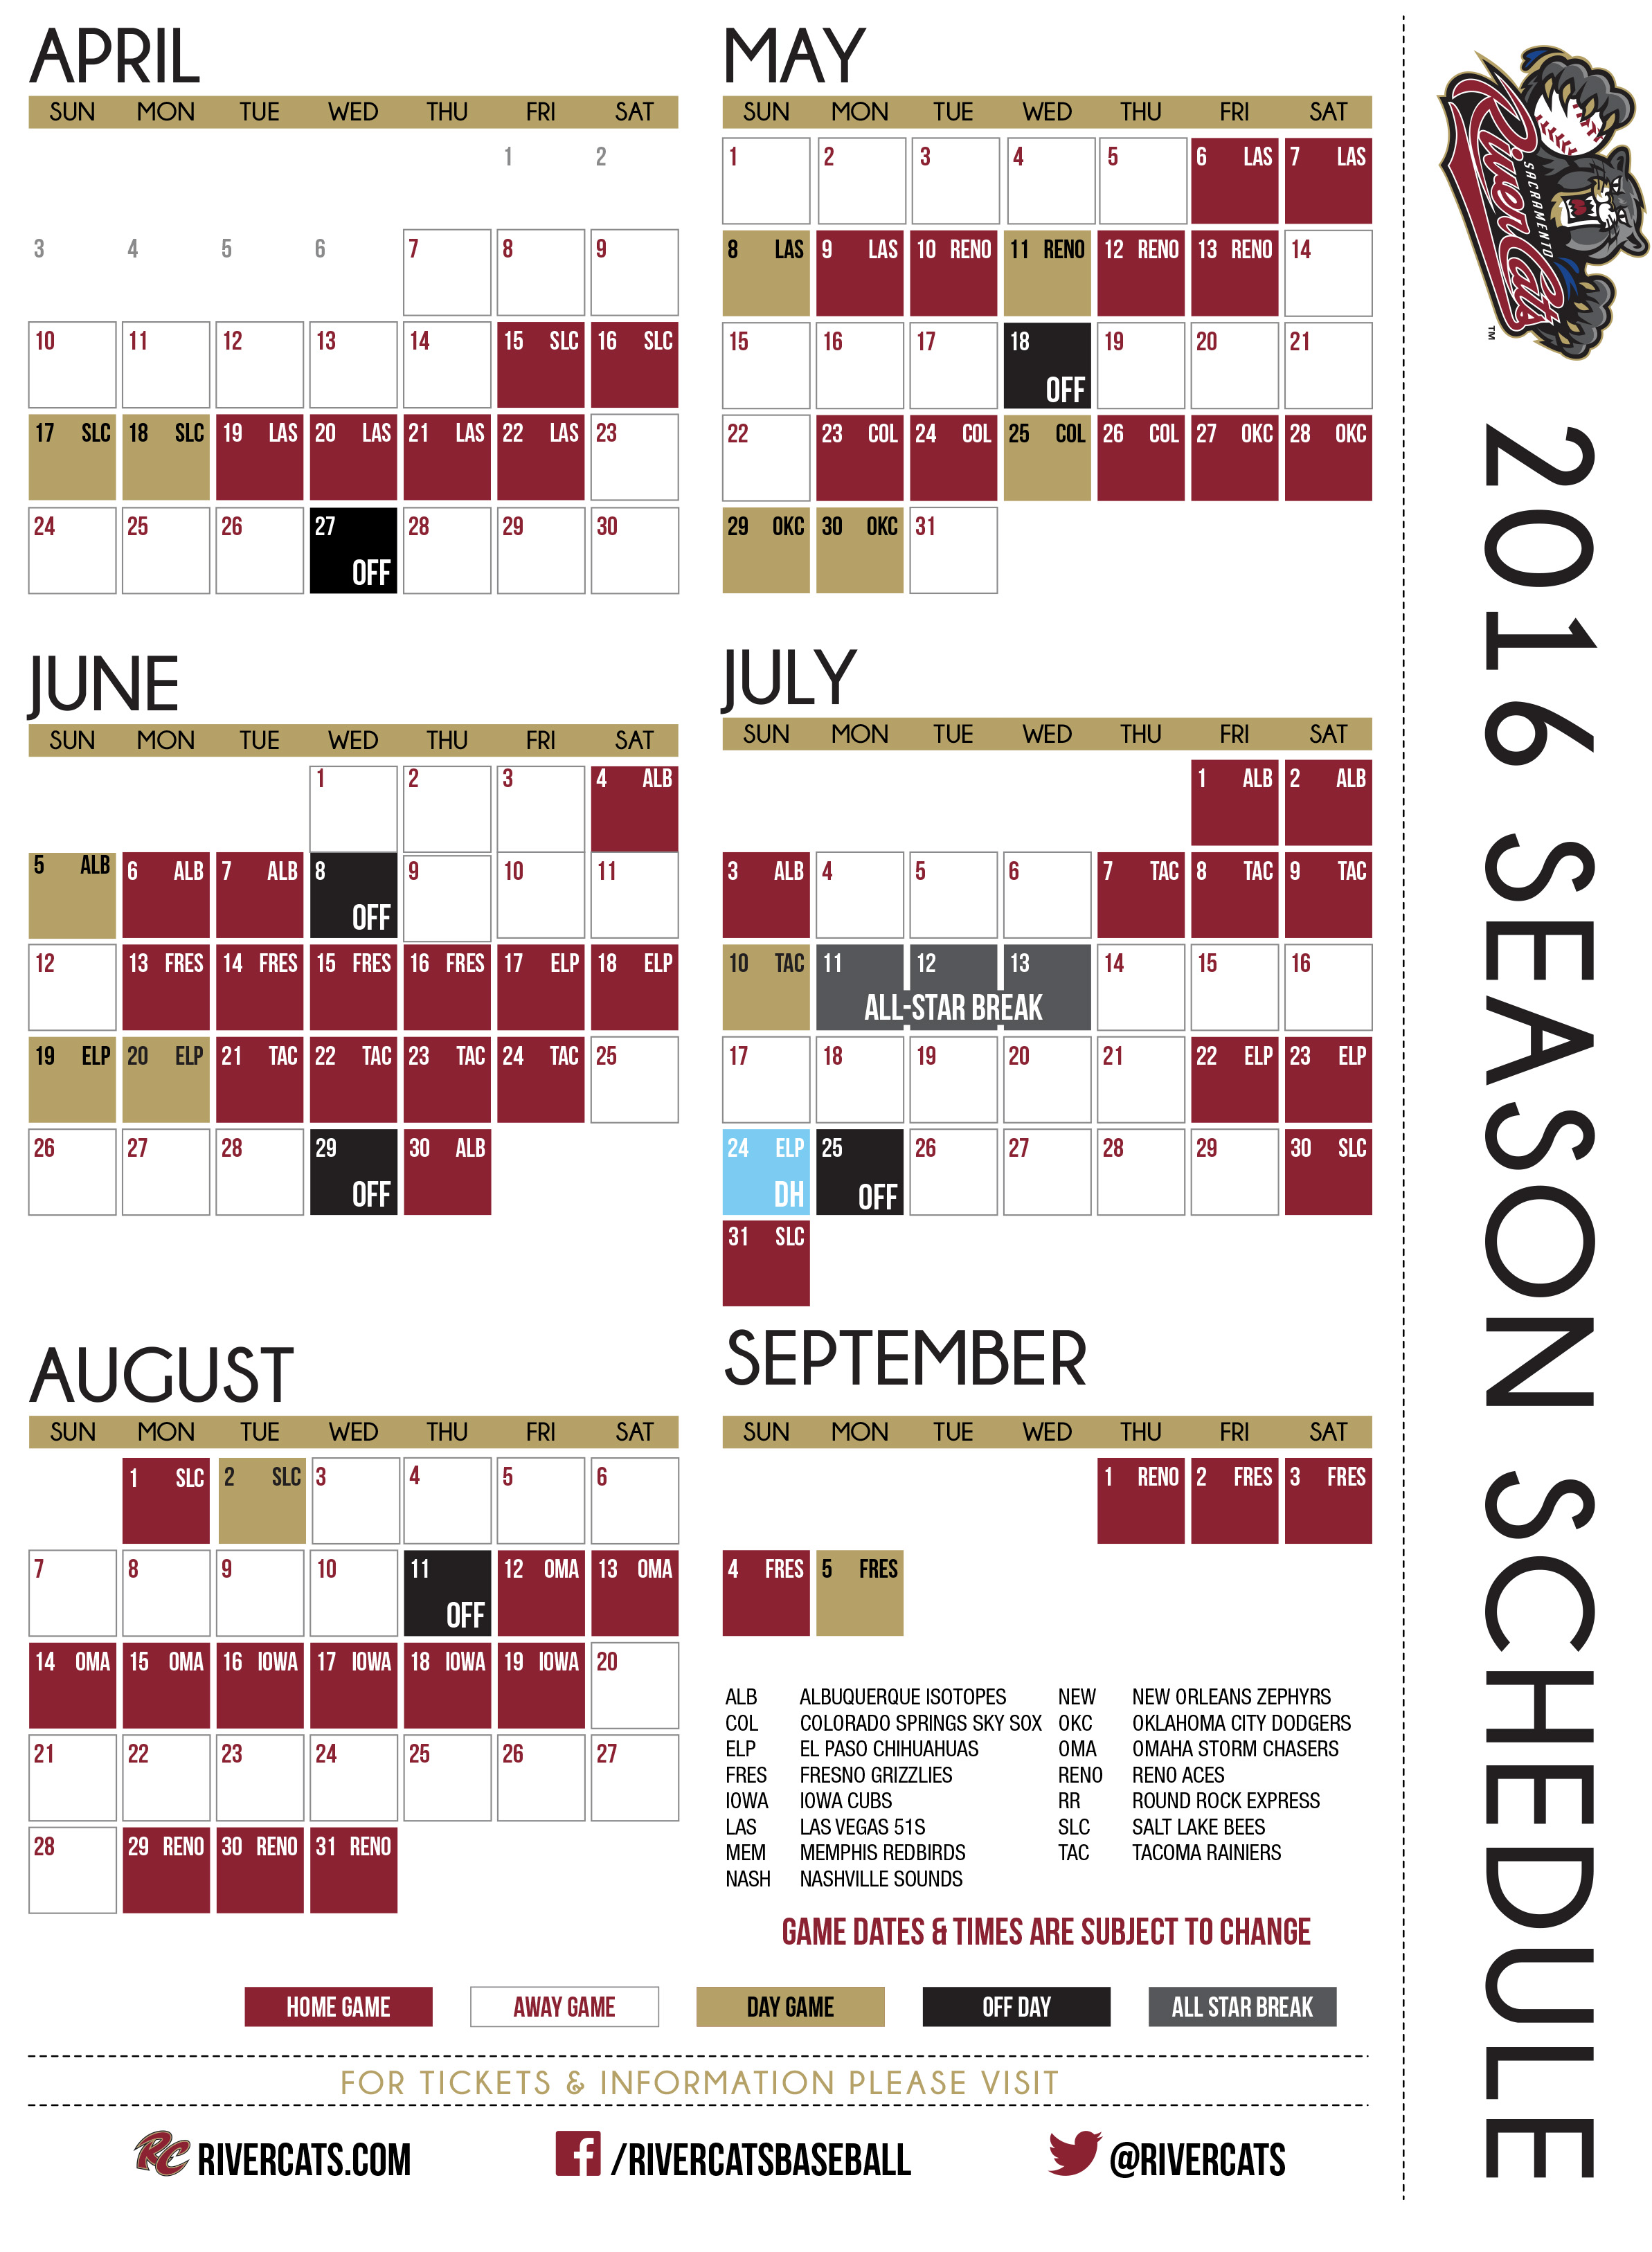 river cats unveil schedule for 2016 season | sacramento river cats news